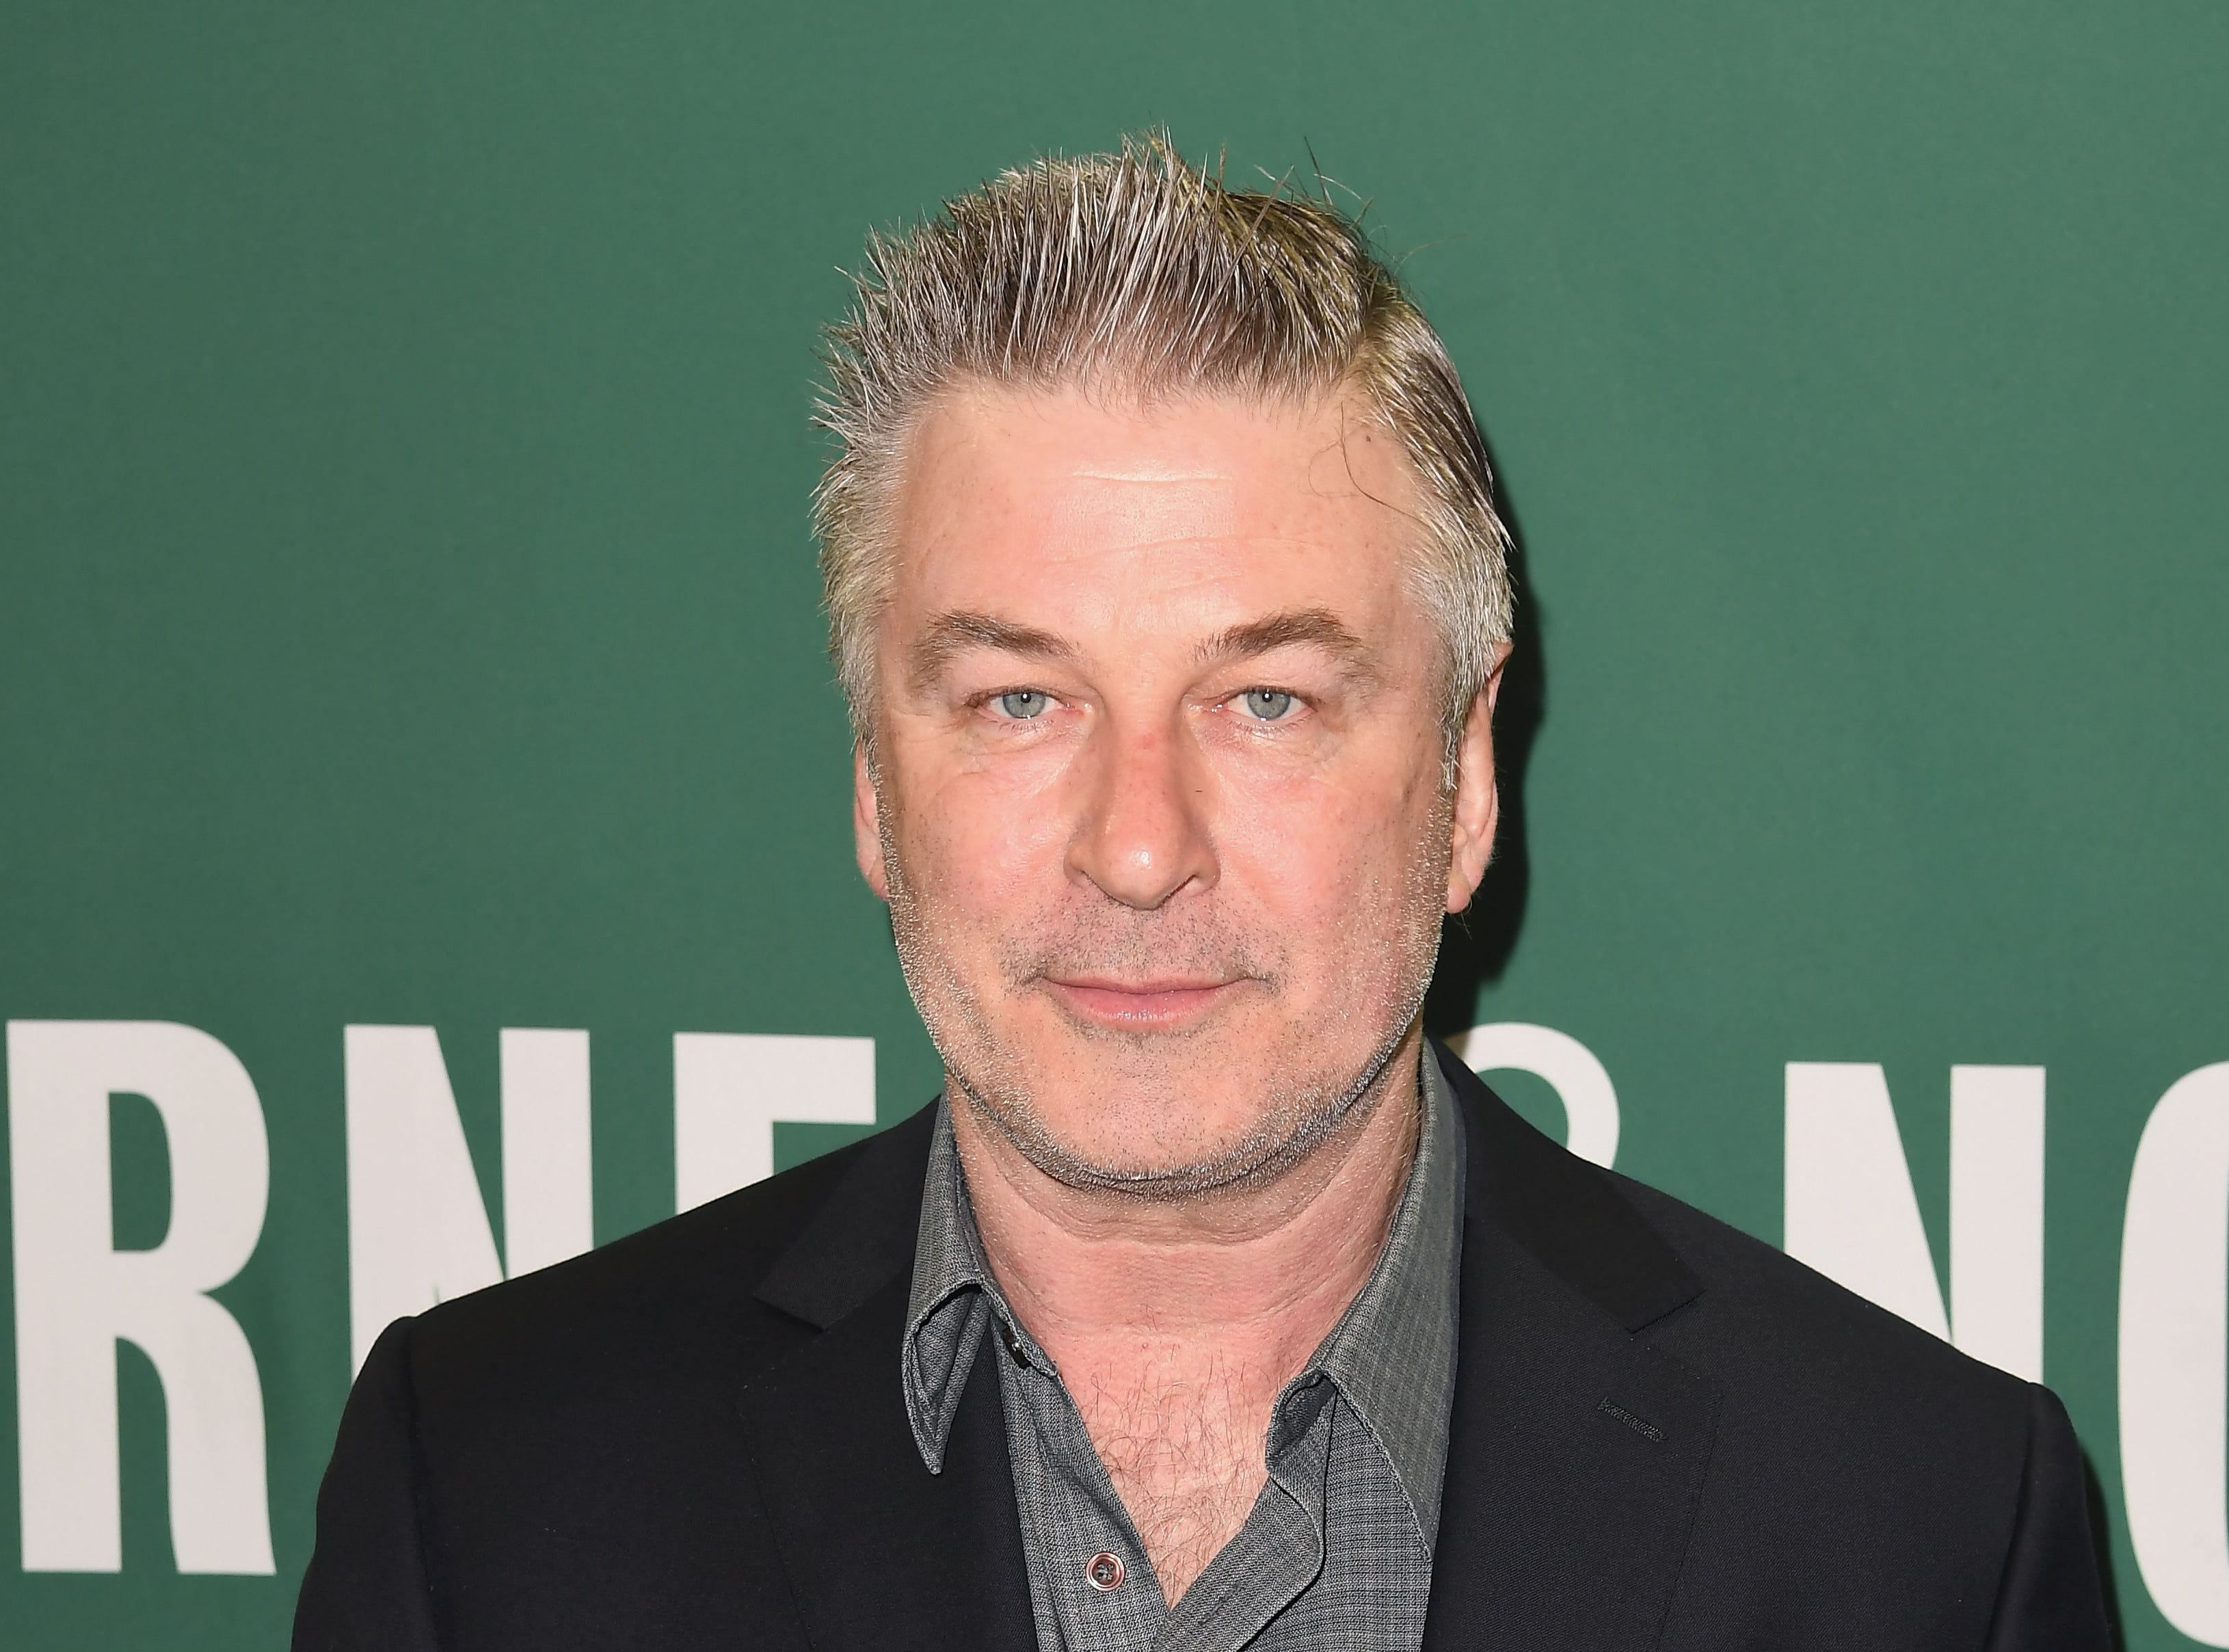 (FILES) In this file photo taken on April 4, 2017 Actor Alec Baldwin arrives at Barnes & Noble Union Square in New York, to sign his new book 'Nevertheless: A Memoir.' - Hollywood actor and television presenter Alec Baldwin was arrested in New York on November 2, 2018 for allegedly punching a 49-year-old man in the face during a parking dispute, police said. (Photo by ANGELA WEISS / AFP)ANGELA WEISS/AFP/Getty Images ORG XMIT: 1 ORIG FILE ID: AFP_1AJ0RH